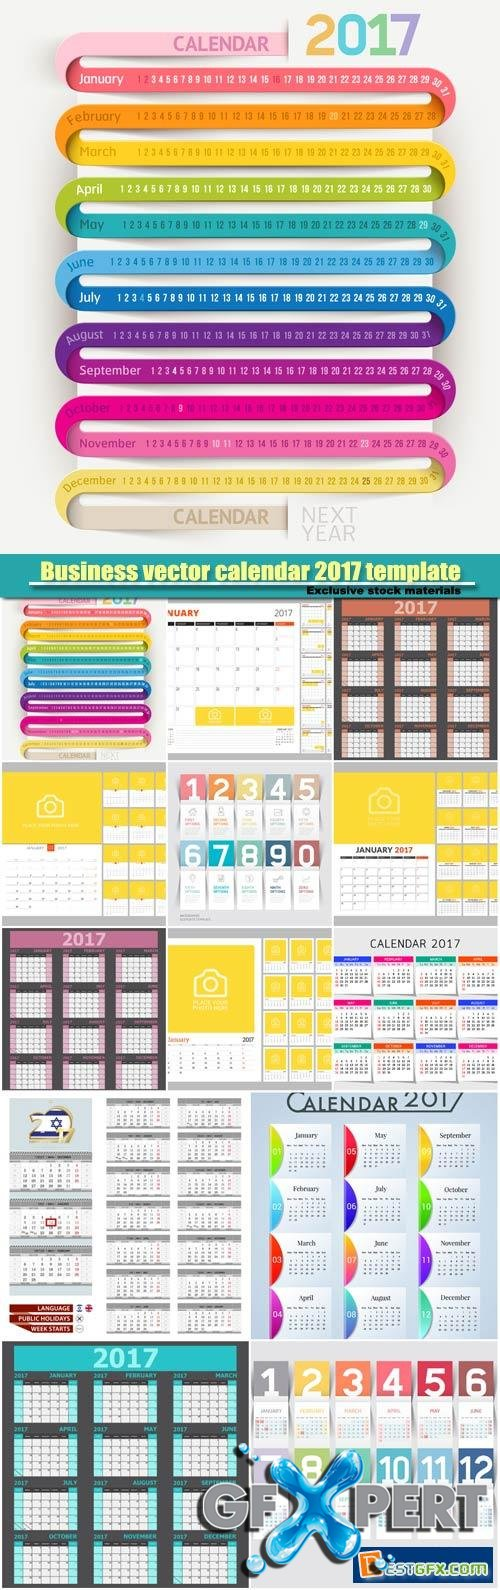 Business Calendar Design : Free business vector calendar template design download